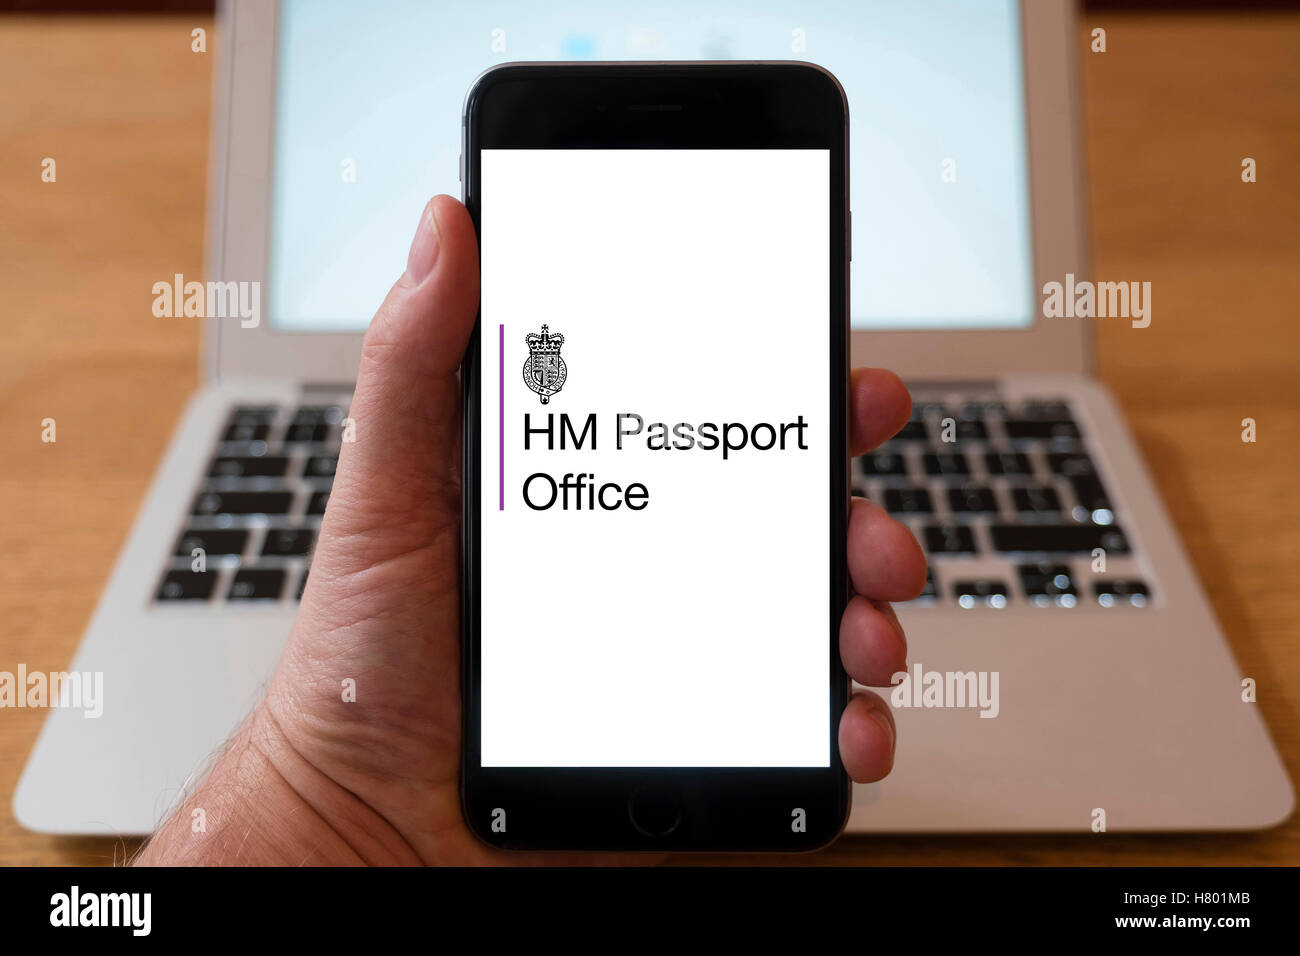 Home office passport logo picture.